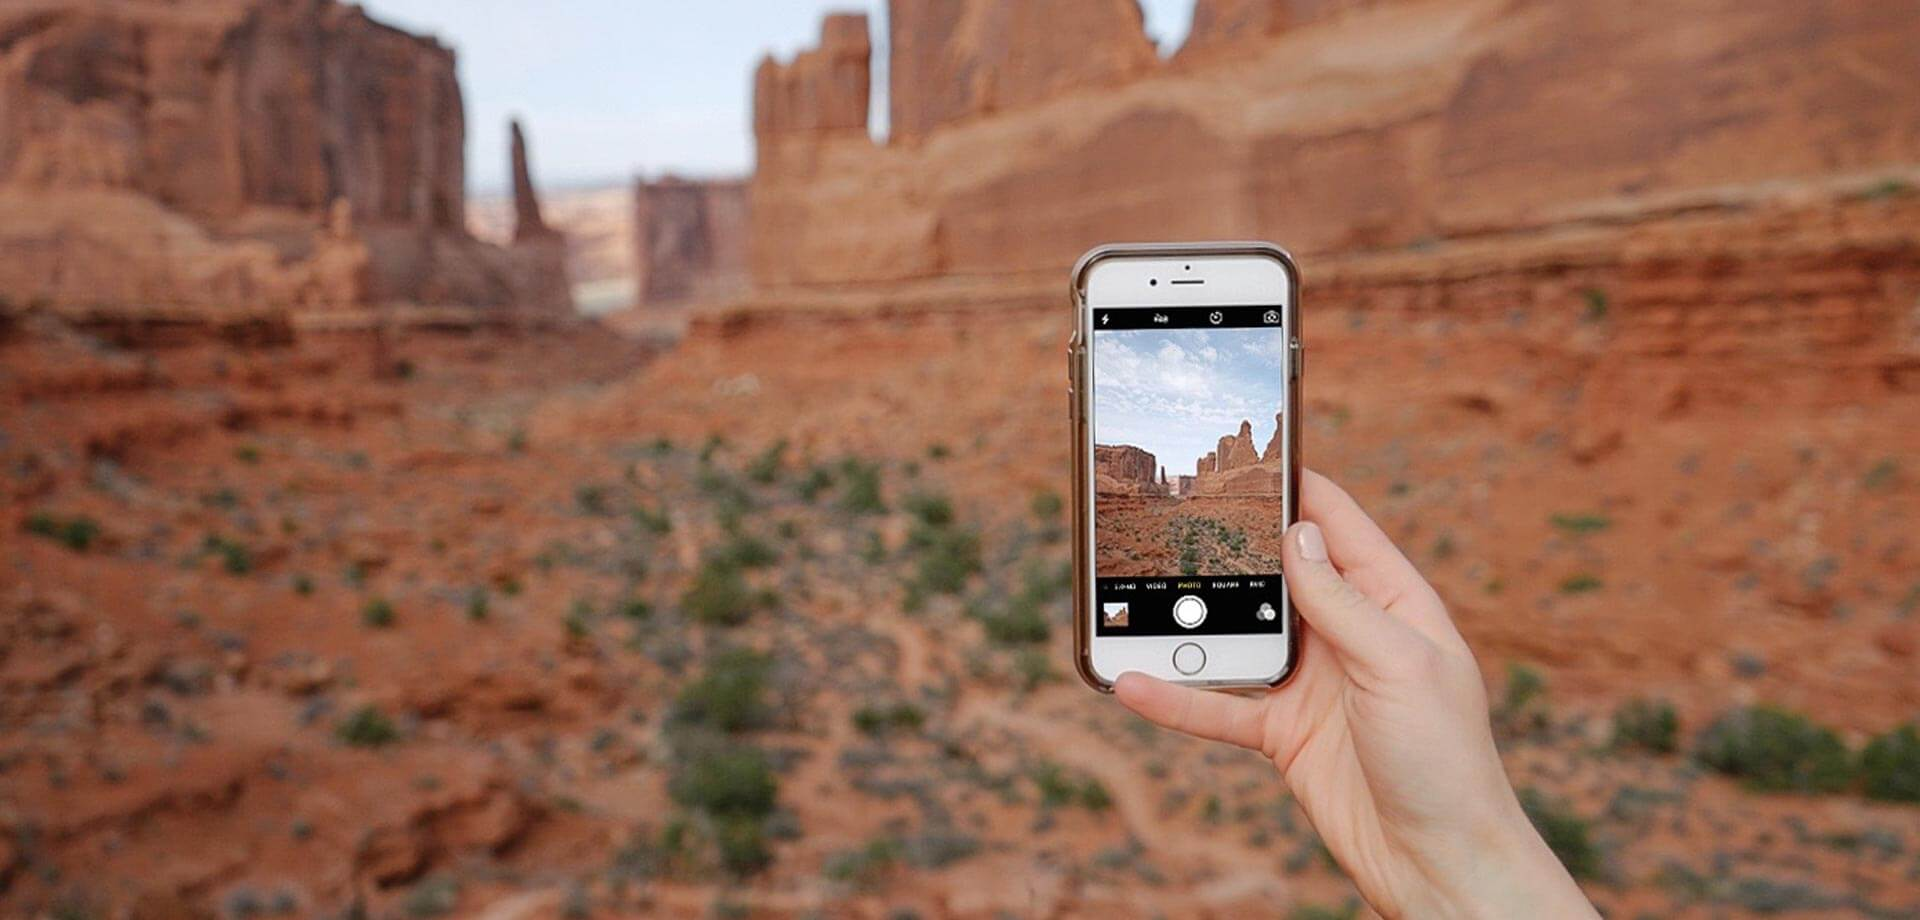 photo of phone using mobile photography tips to take a photo of red rock formations